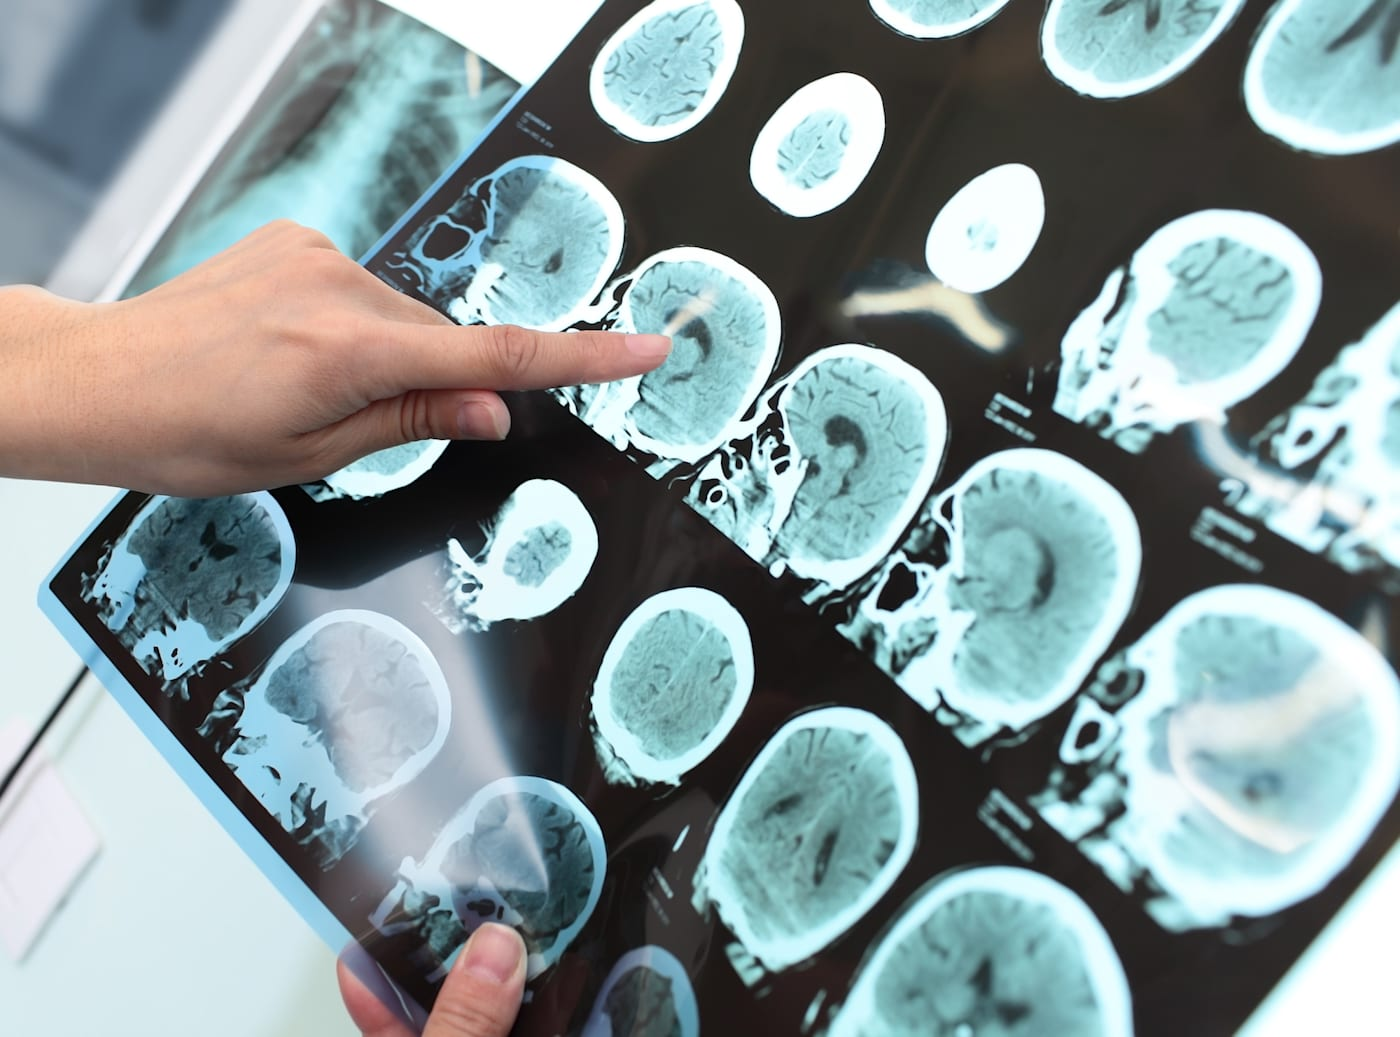 Brain glucose levels can predict someone waking from a coma